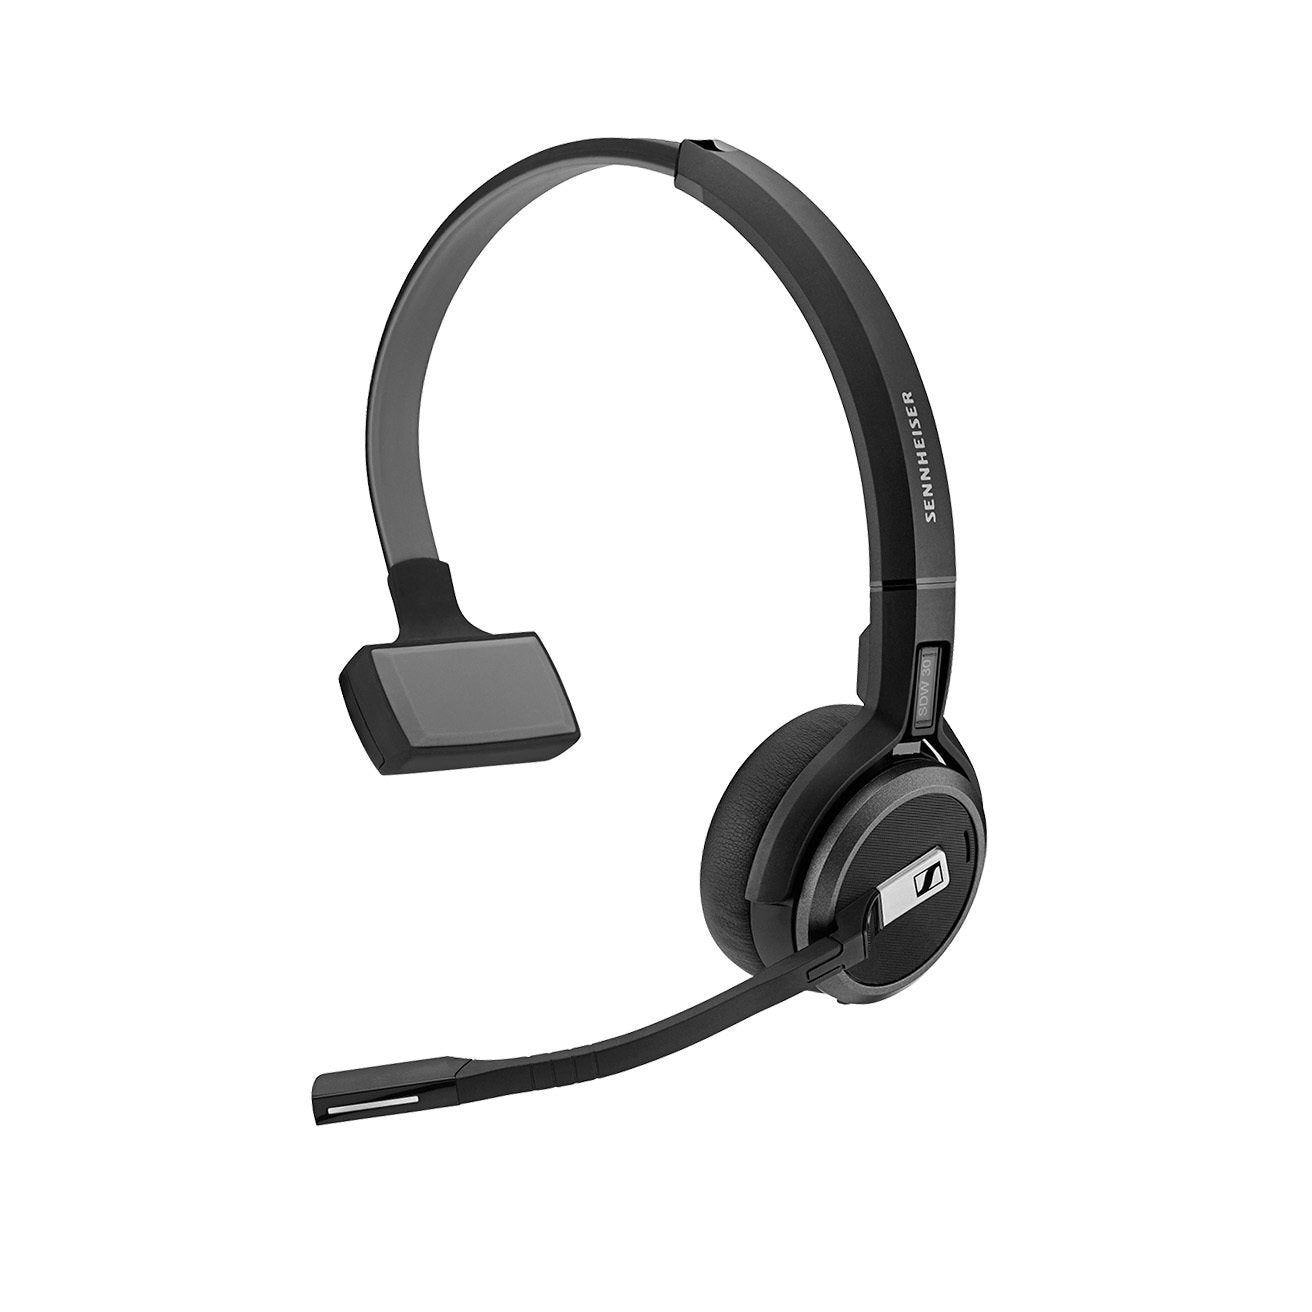 Sennheiser SDW 30 Headset only